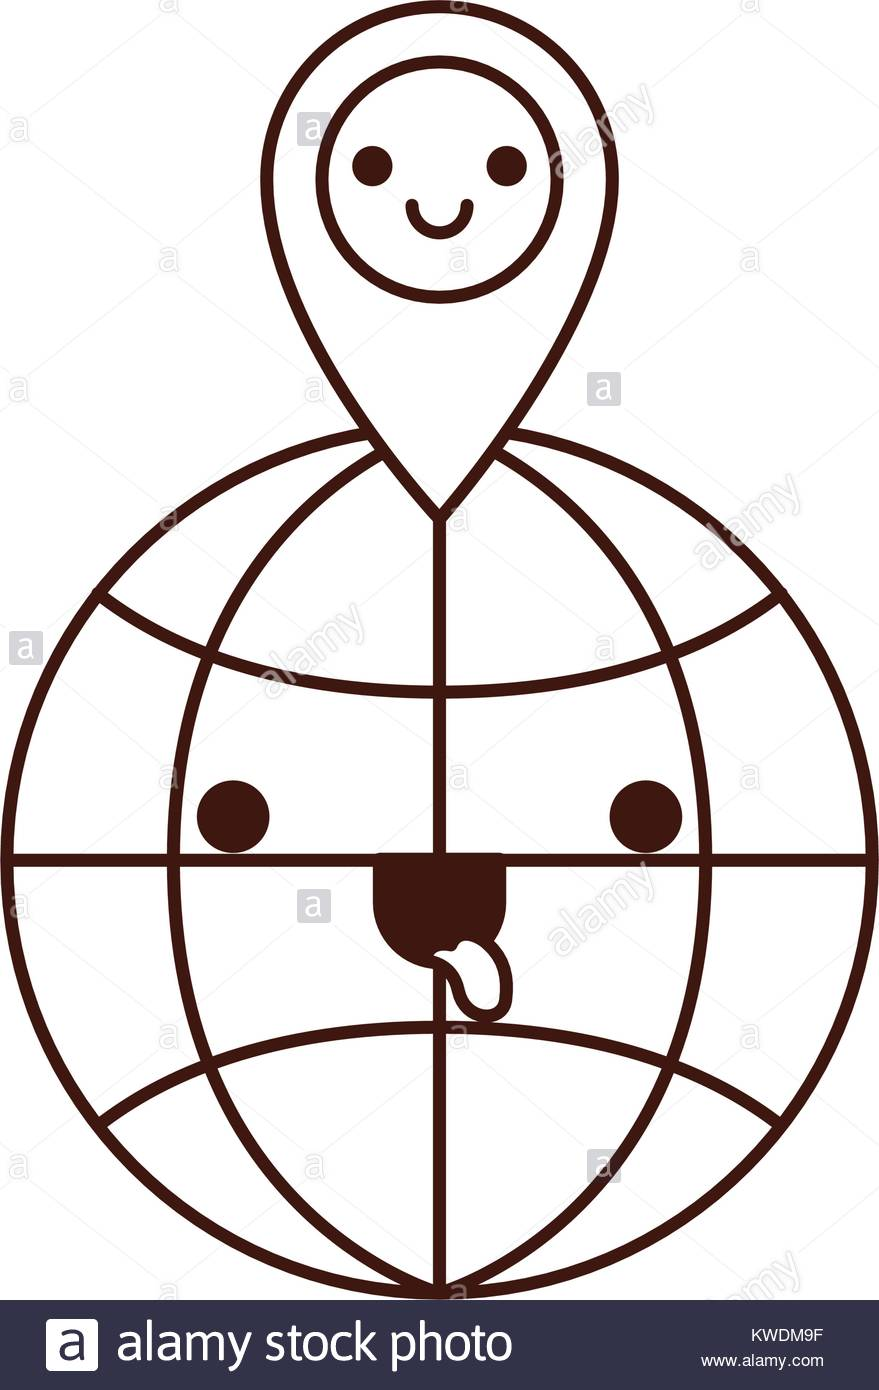 879x1390 Kawaii World Globe And Kawaii Map Pointer On Top In Monochrome